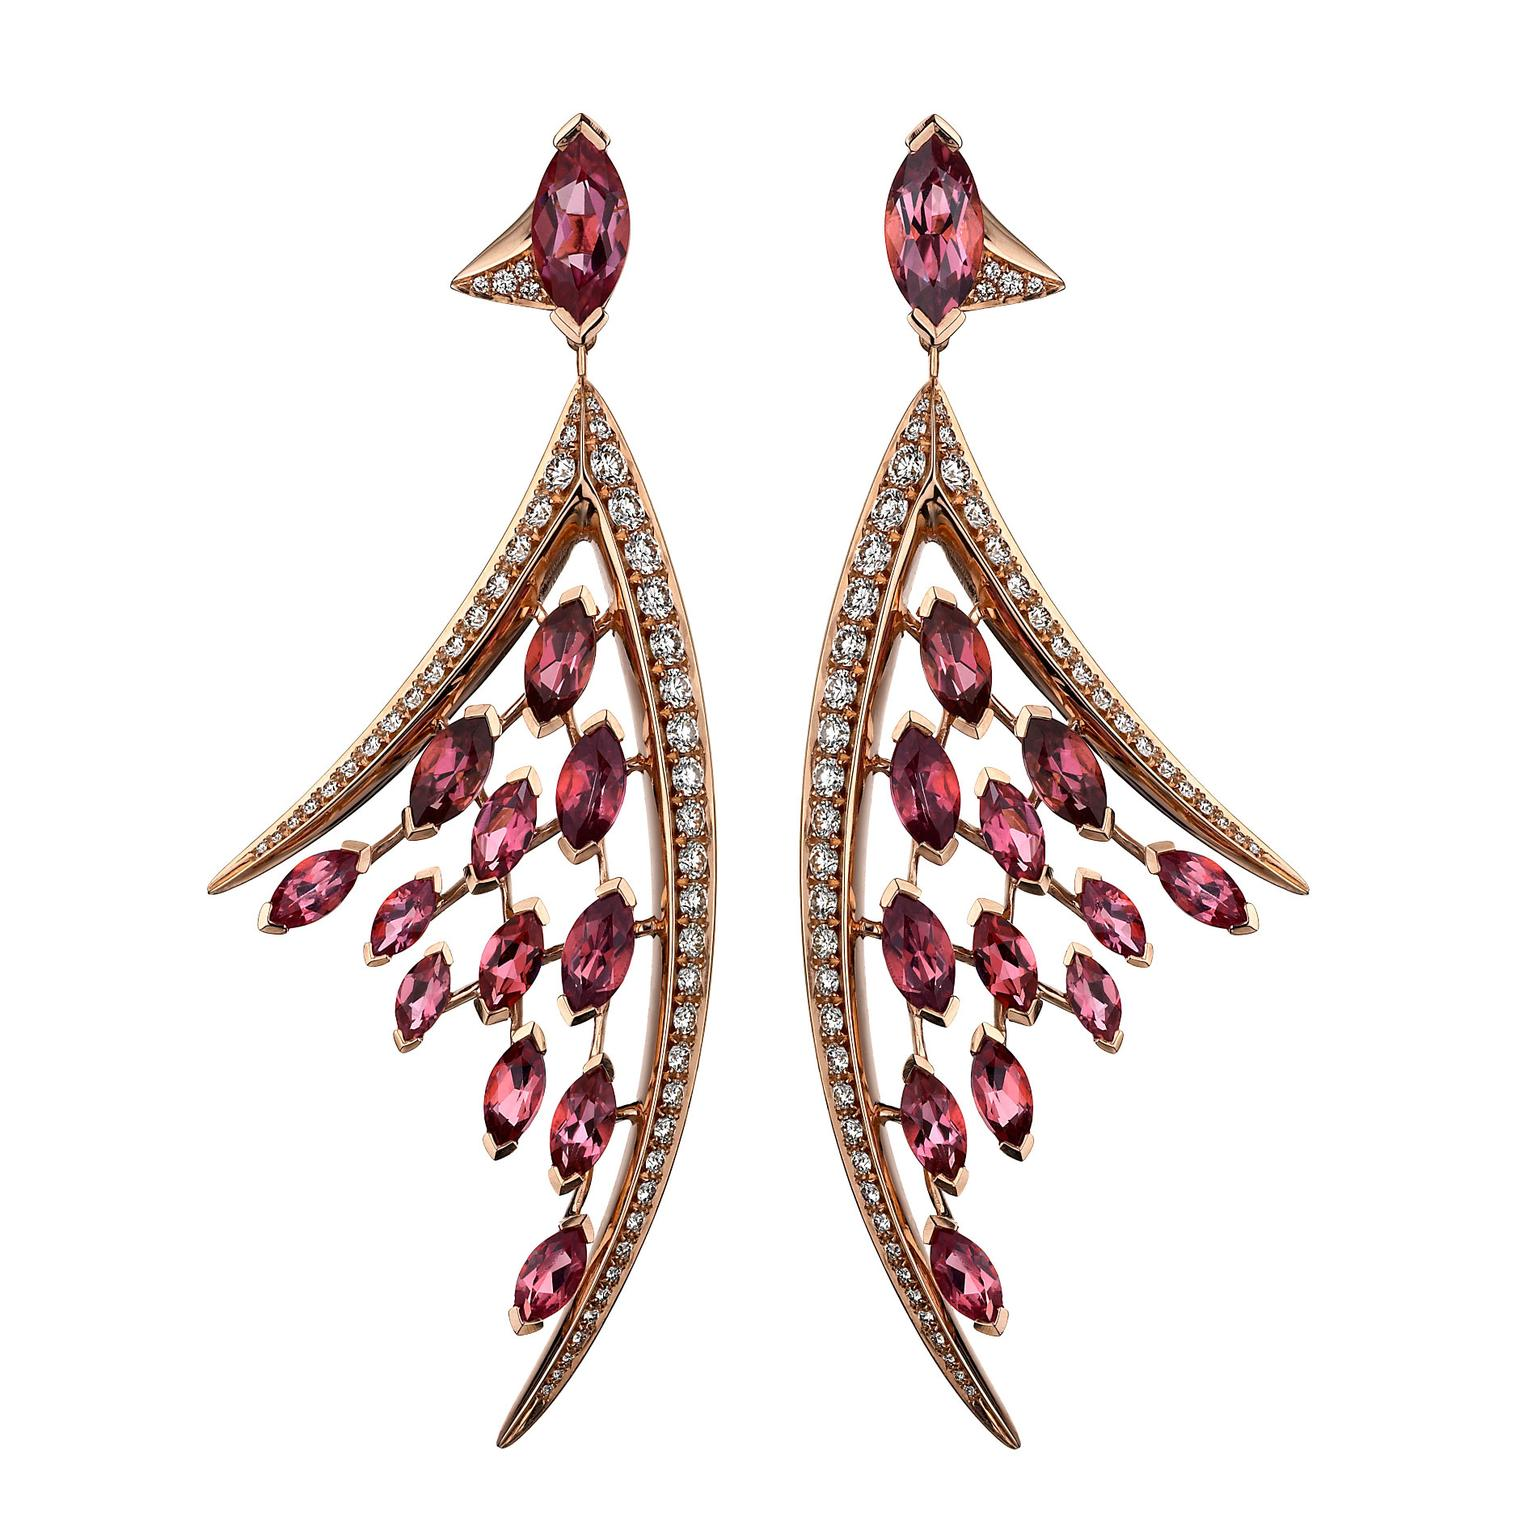 Shaun Leane marquise-cut pink tourmaline earrings